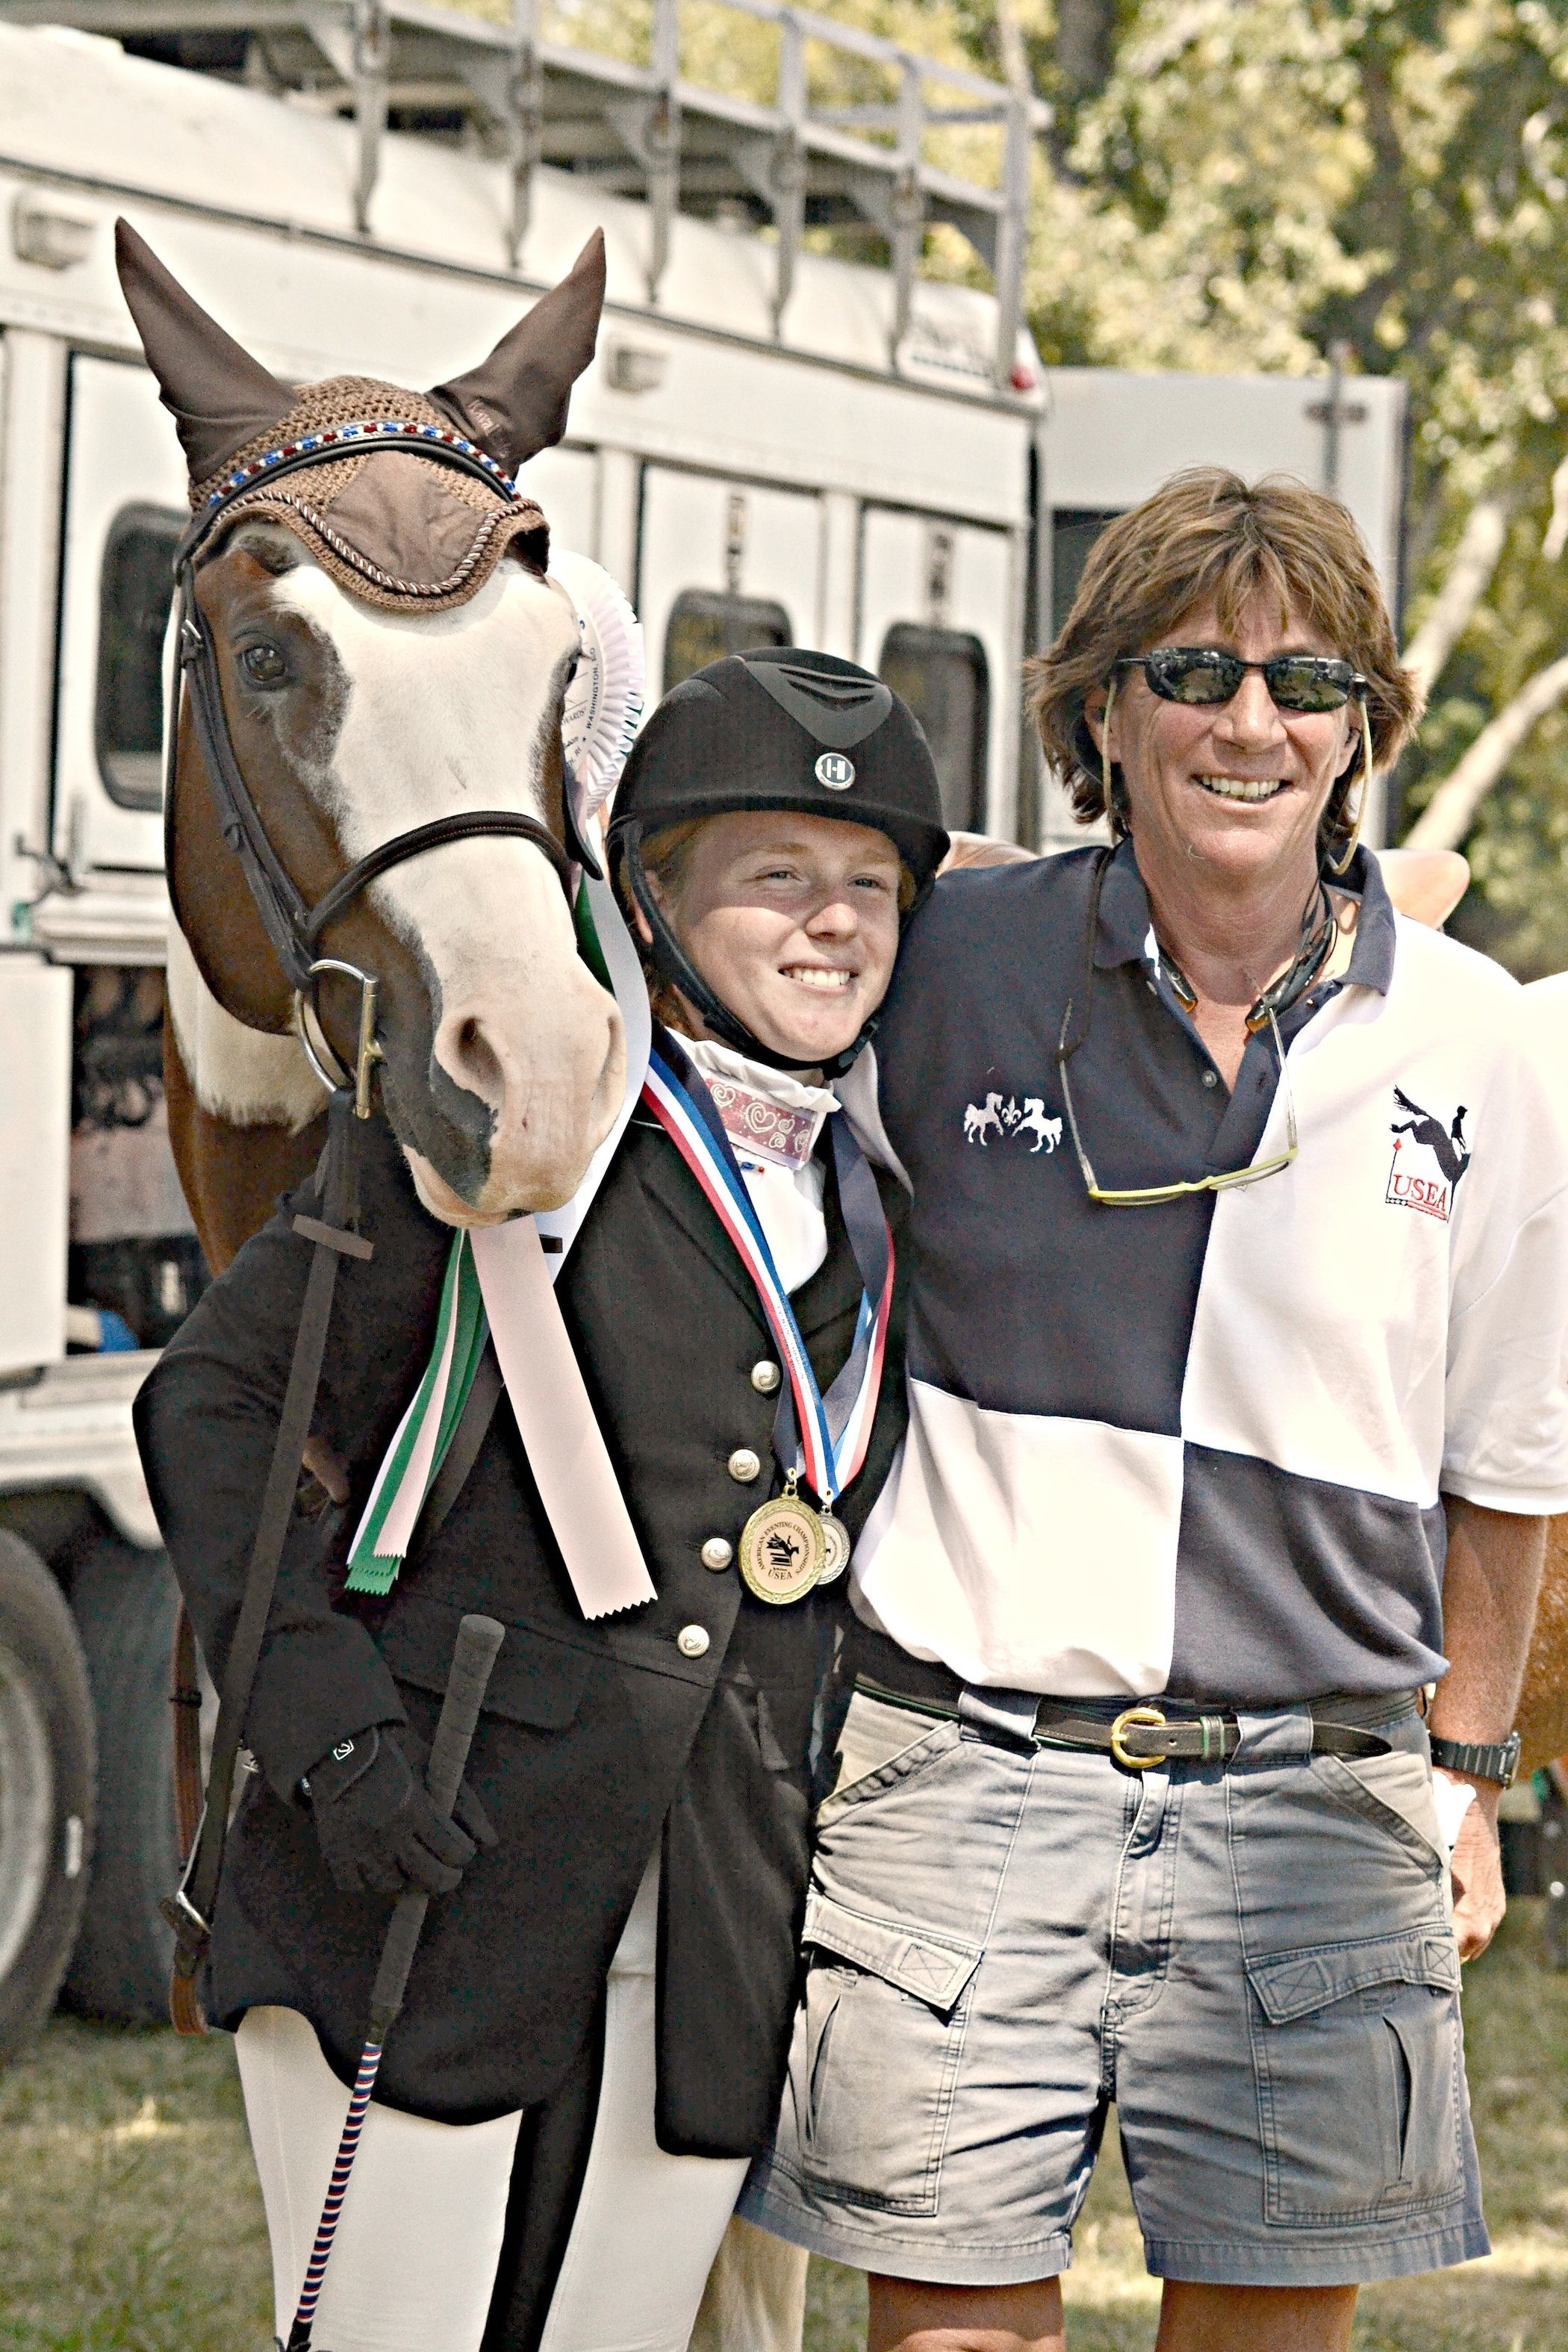 Cathy with student Bobbie Jones and Rebel's Heartbreaker, who earned fourth out of 31 starters in Novice Junior at the 2014 American Eventing Championships. (Photo by JJ Sillman Photography)